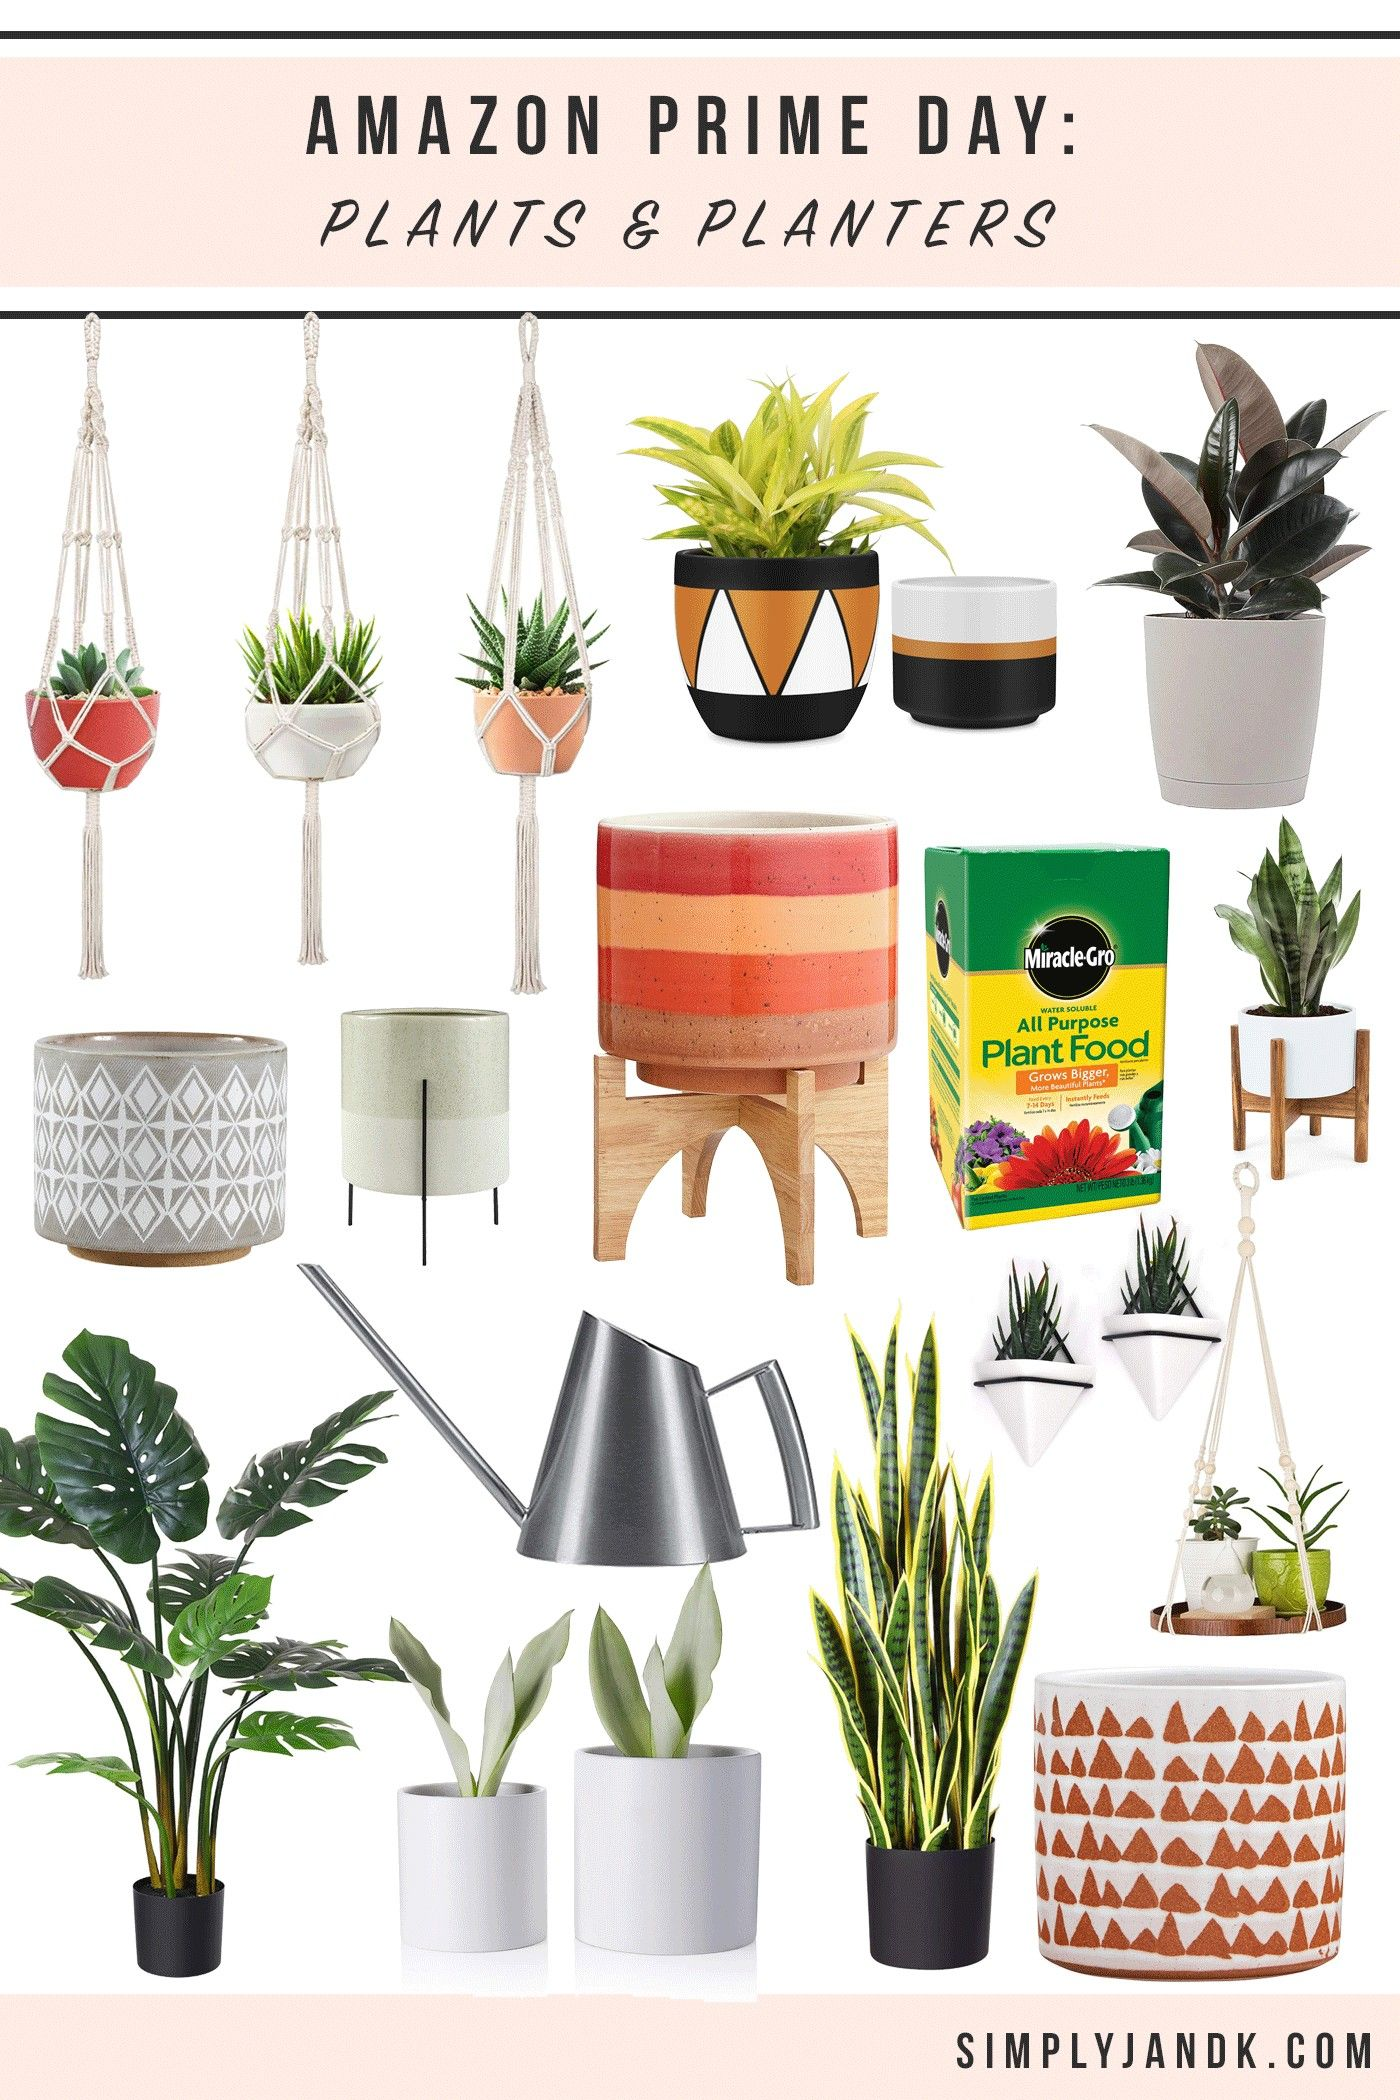 The Best Home Deals From Amazon Prime Day Home Decor Decor Deals Amazon Home Decor Amazon Decor